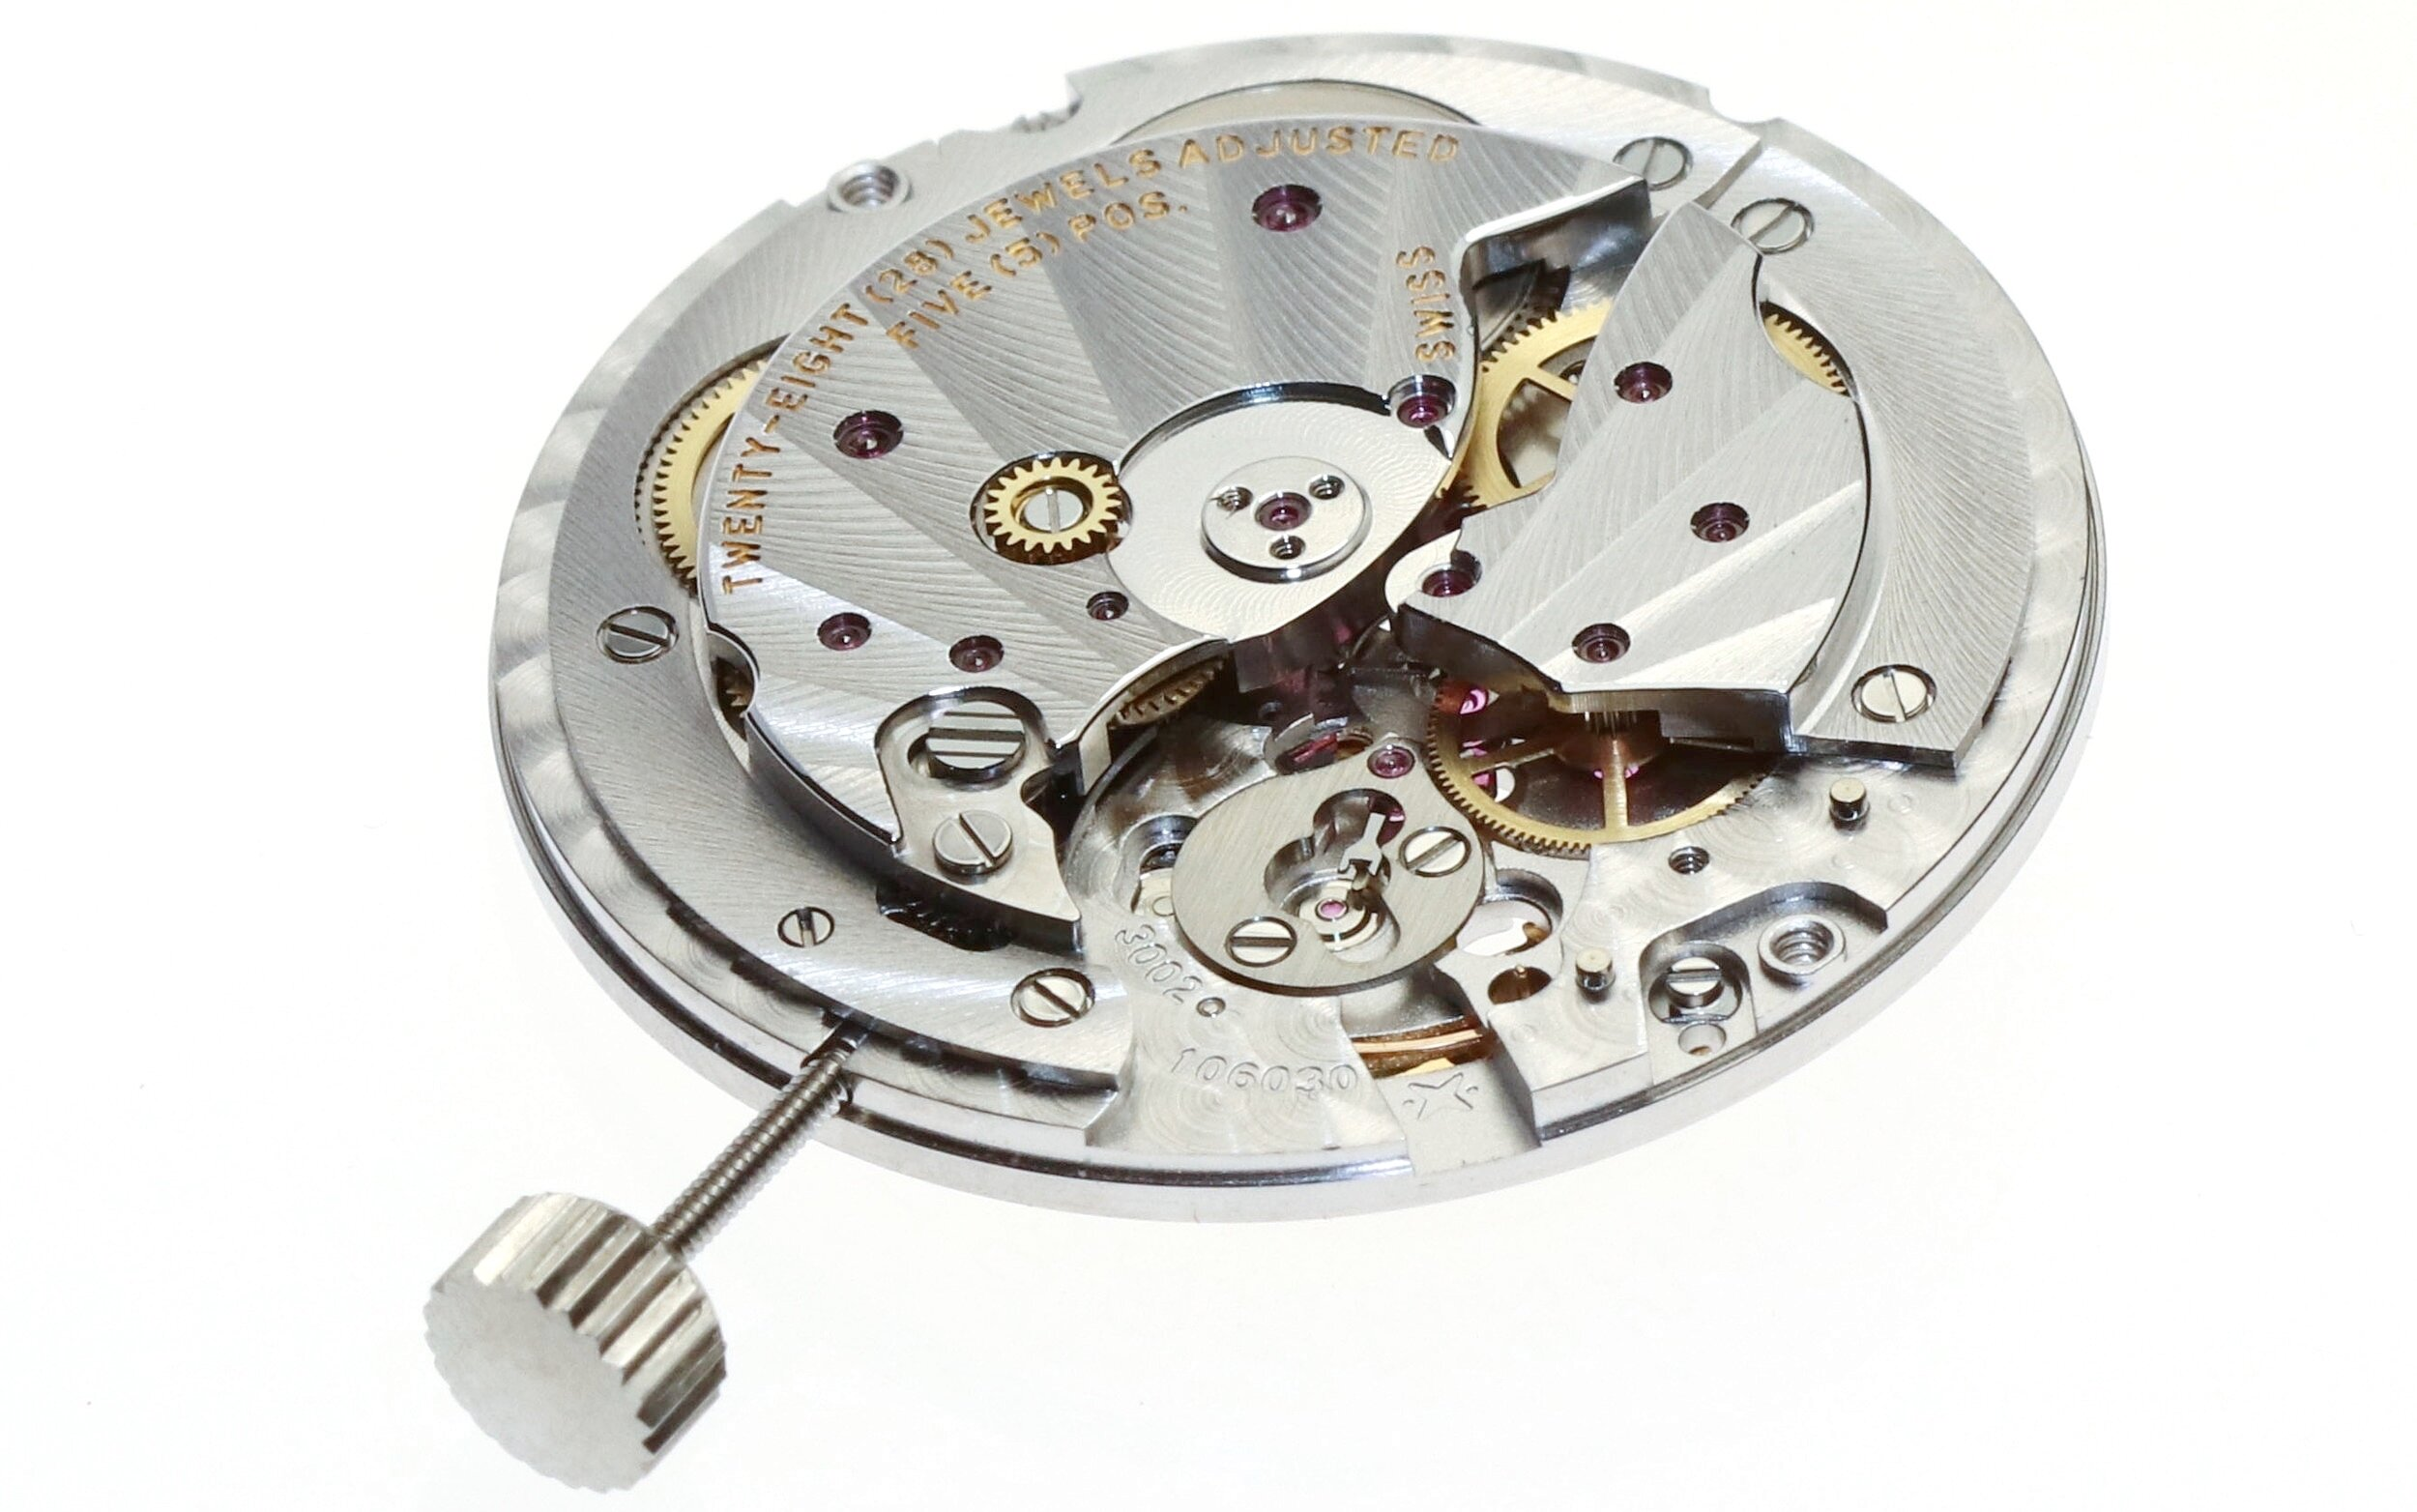 The movement with the rotor, balance cock and balance removed.